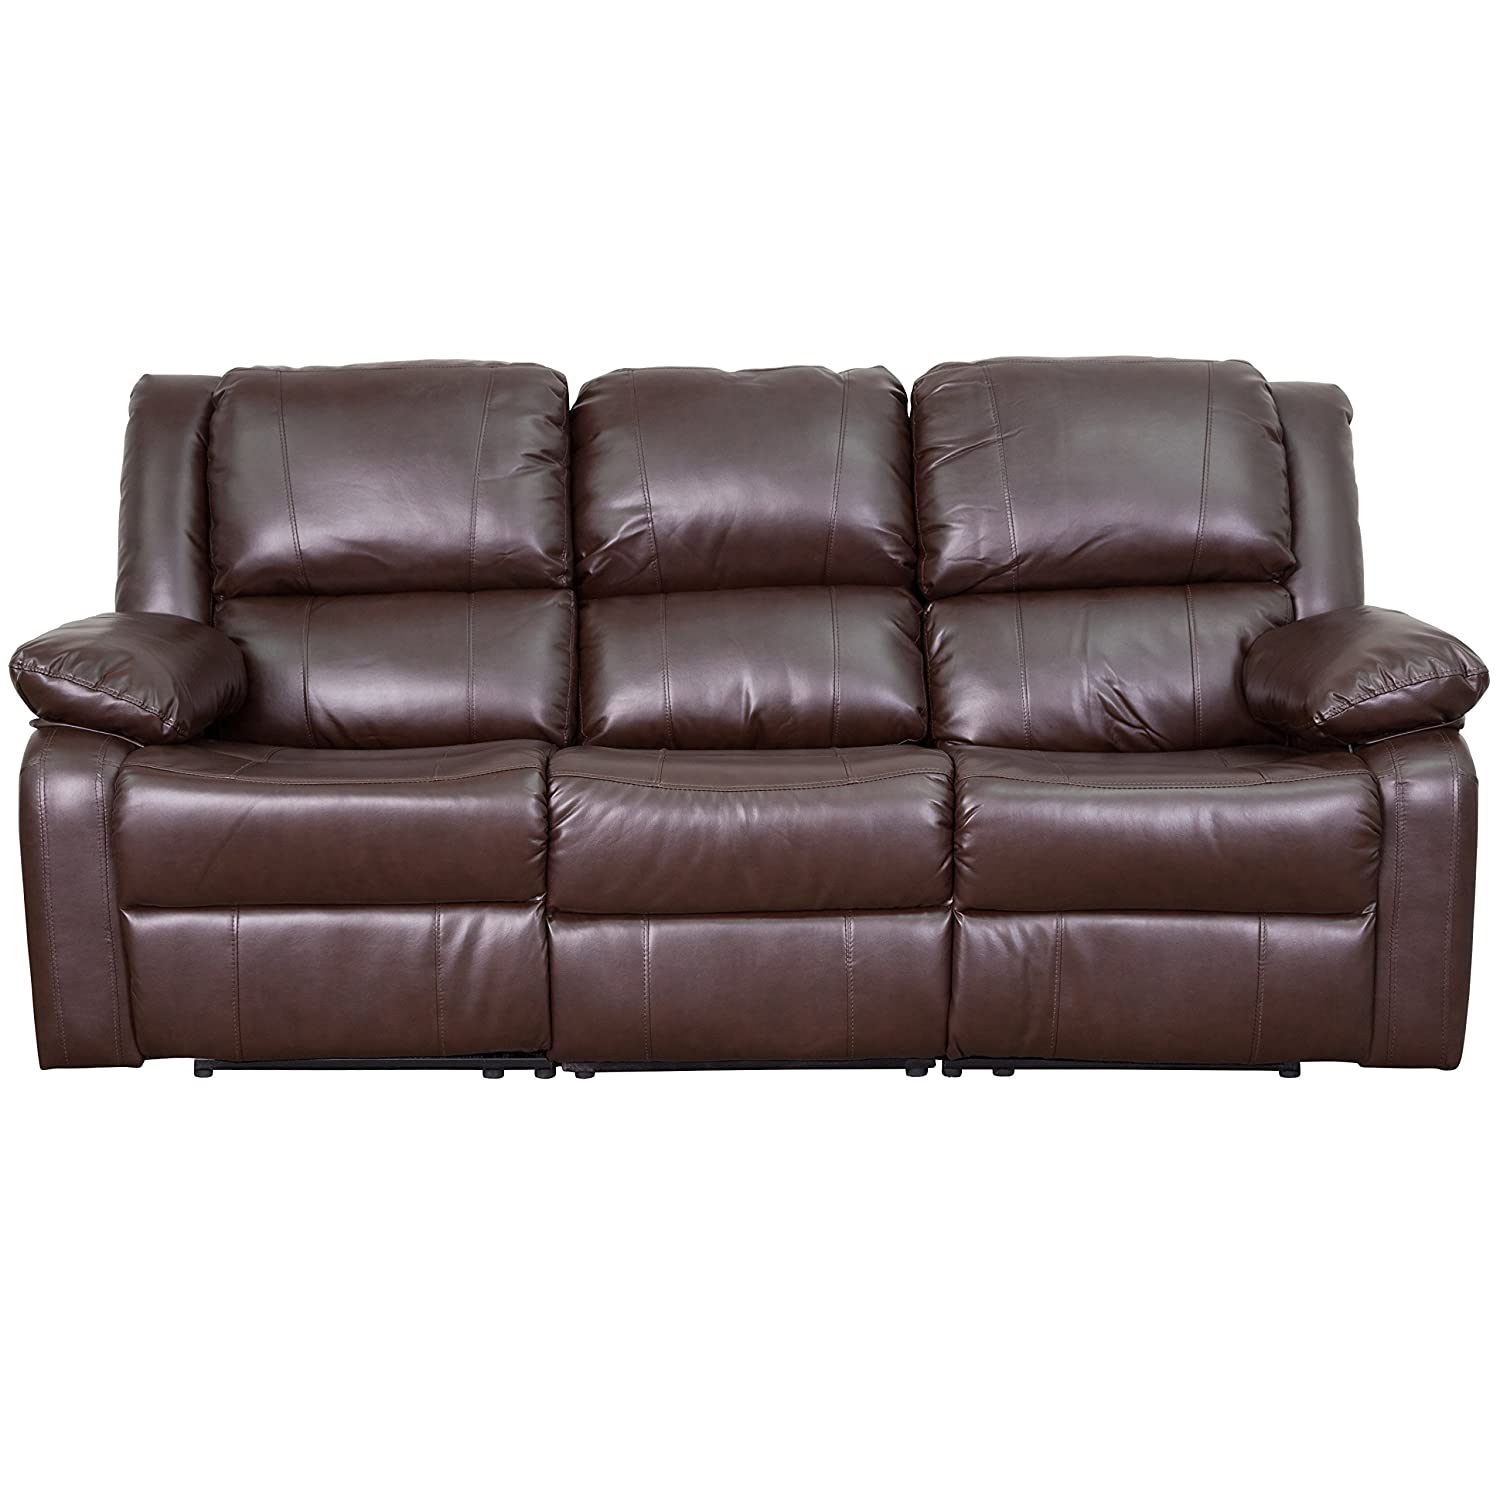 Amazon.com: Flash Furniture Harmony Series Brown Leather Sofa With Two  Built In Recliners: Kitchen U0026 Dining